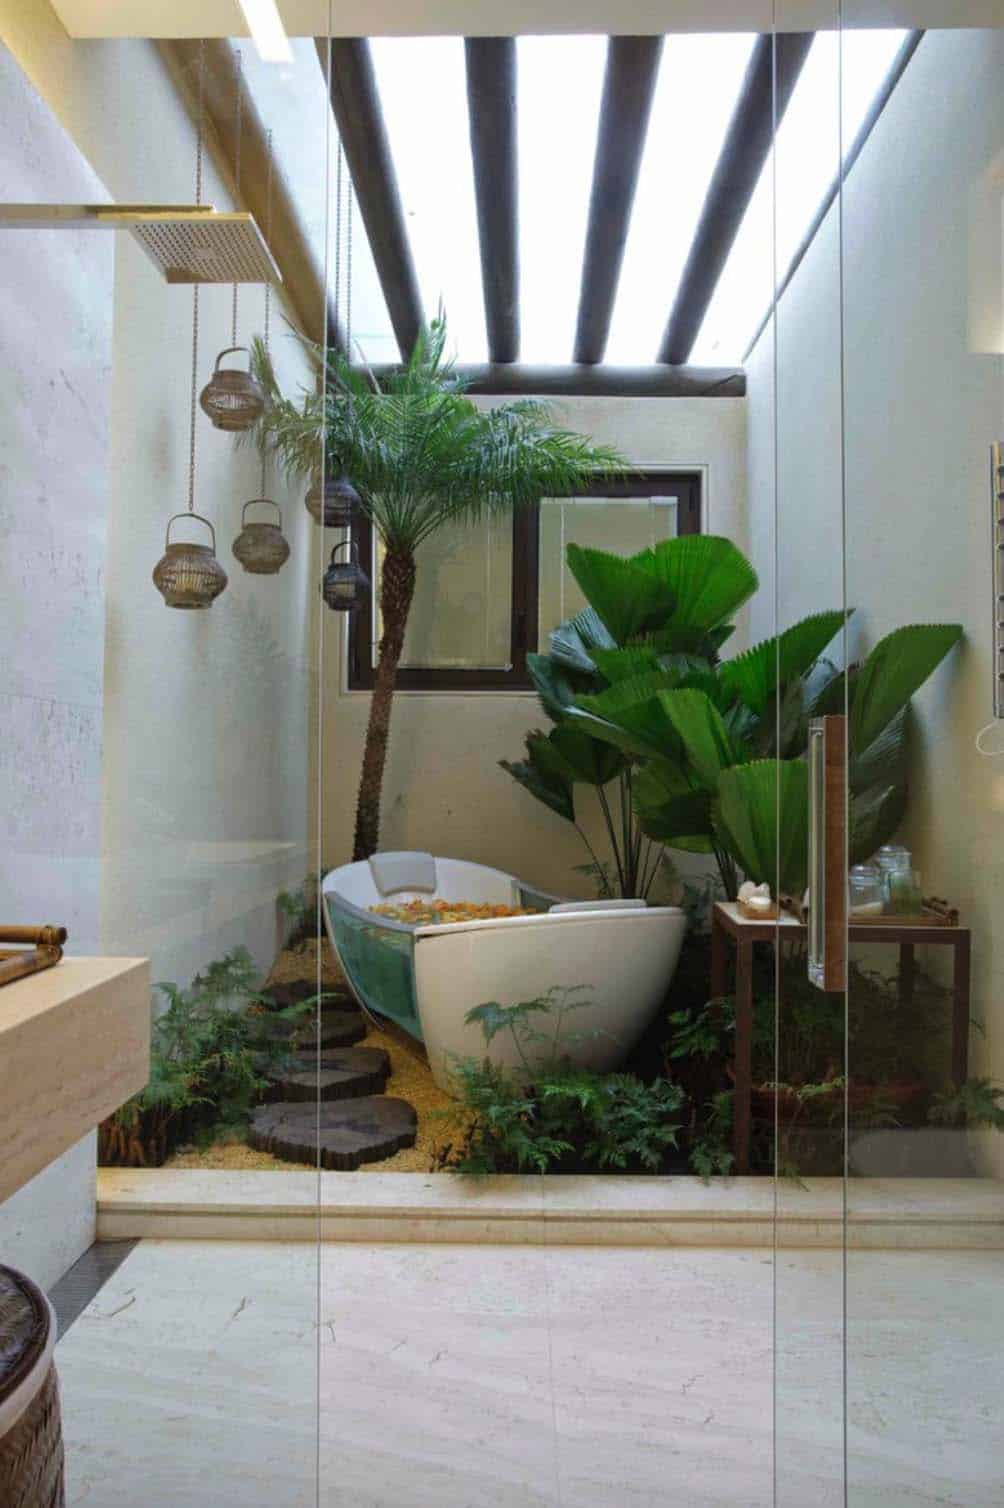 Inspiring Bathrooms Integrating Lush Gardens-07-1 Kindesign